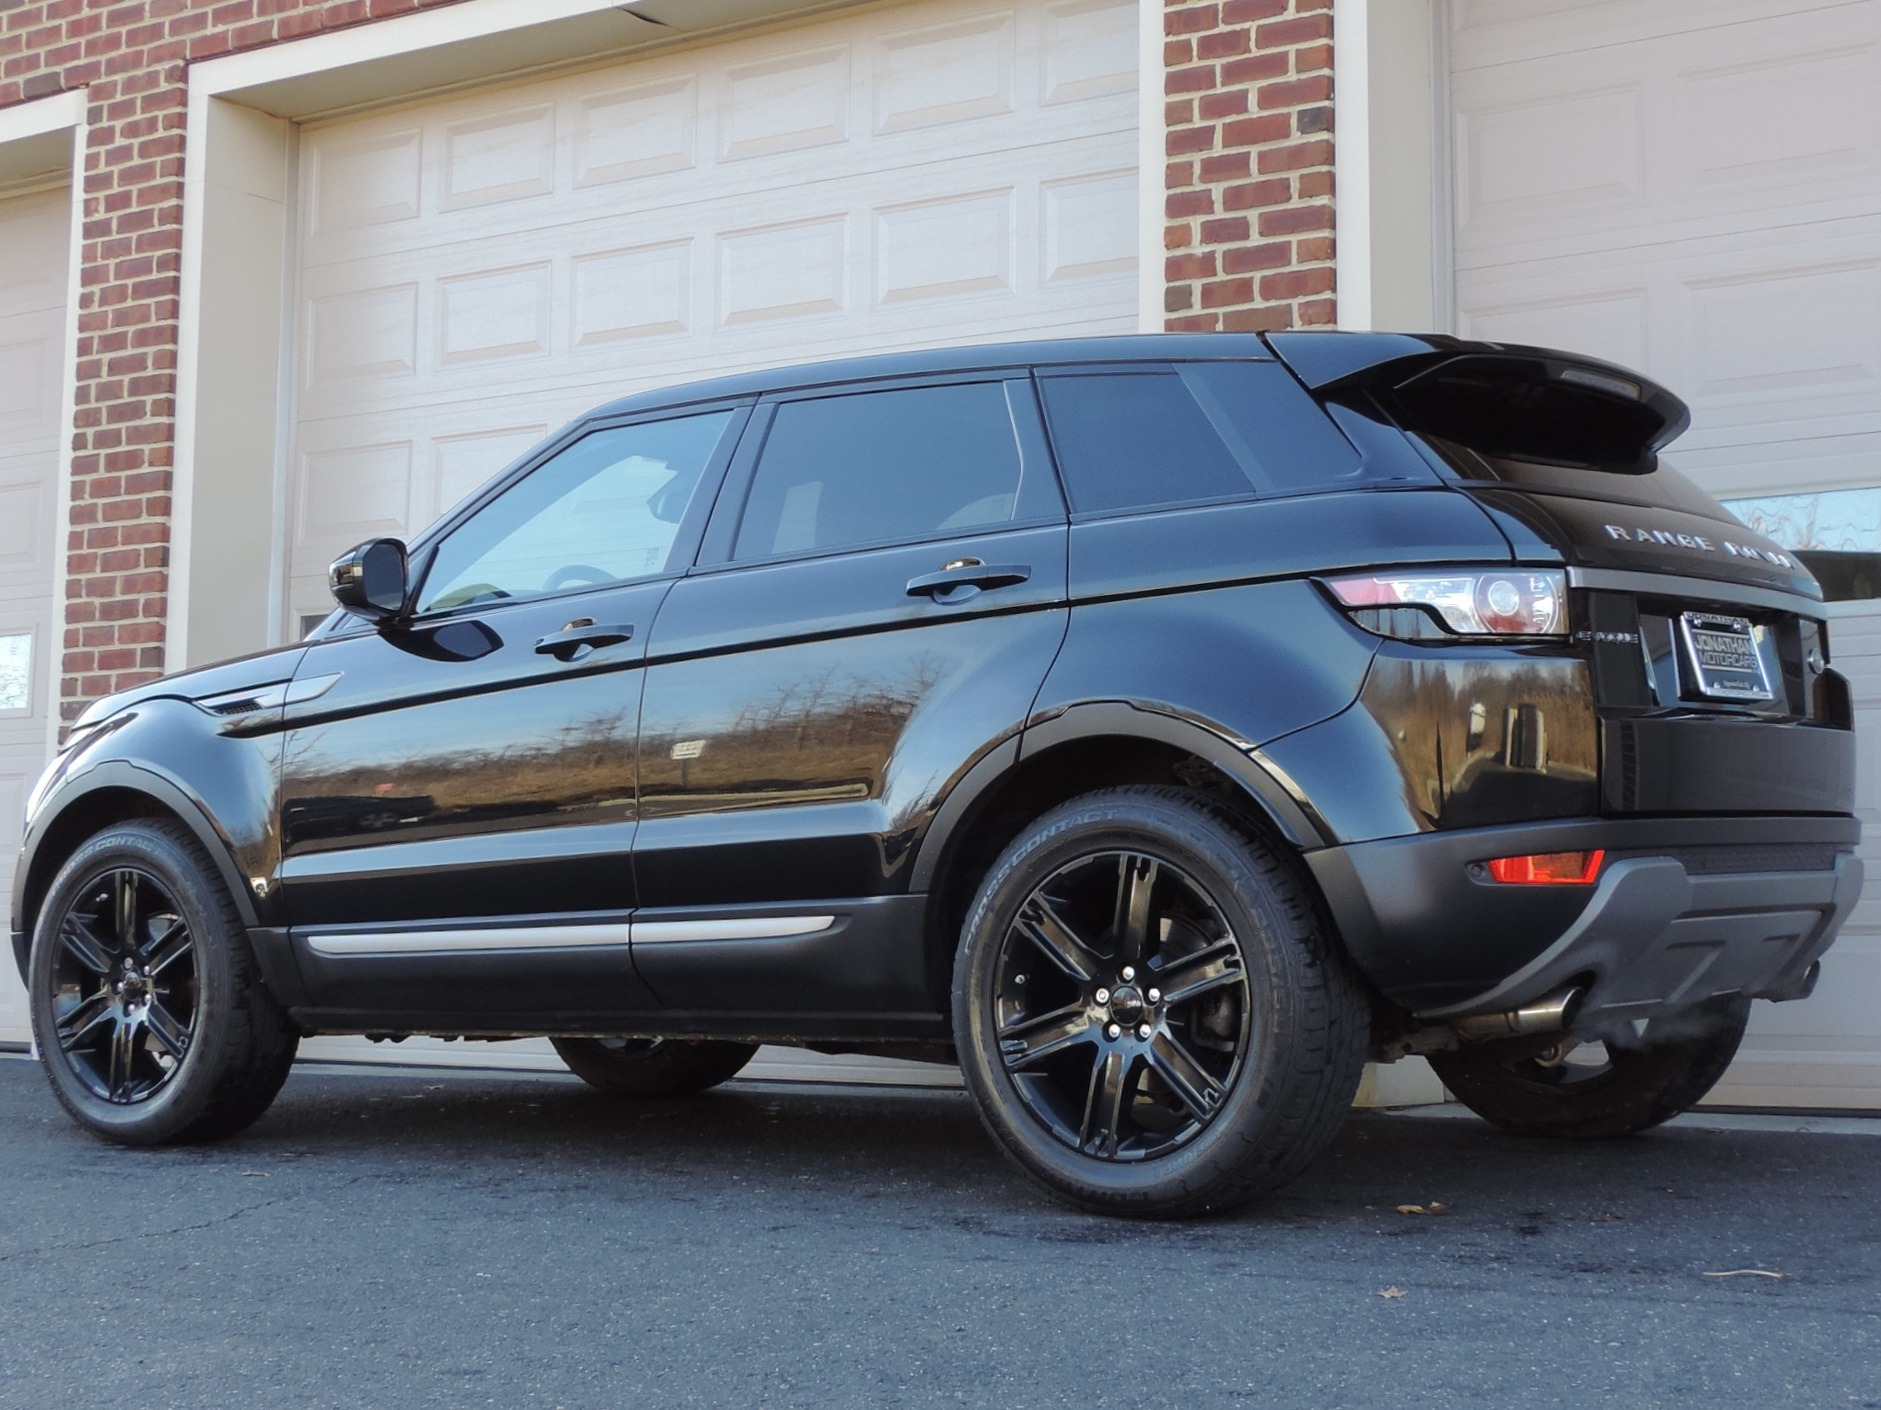 2015 land rover range rover evoque pure plus stock 963912 for sale near edgewater park nj. Black Bedroom Furniture Sets. Home Design Ideas